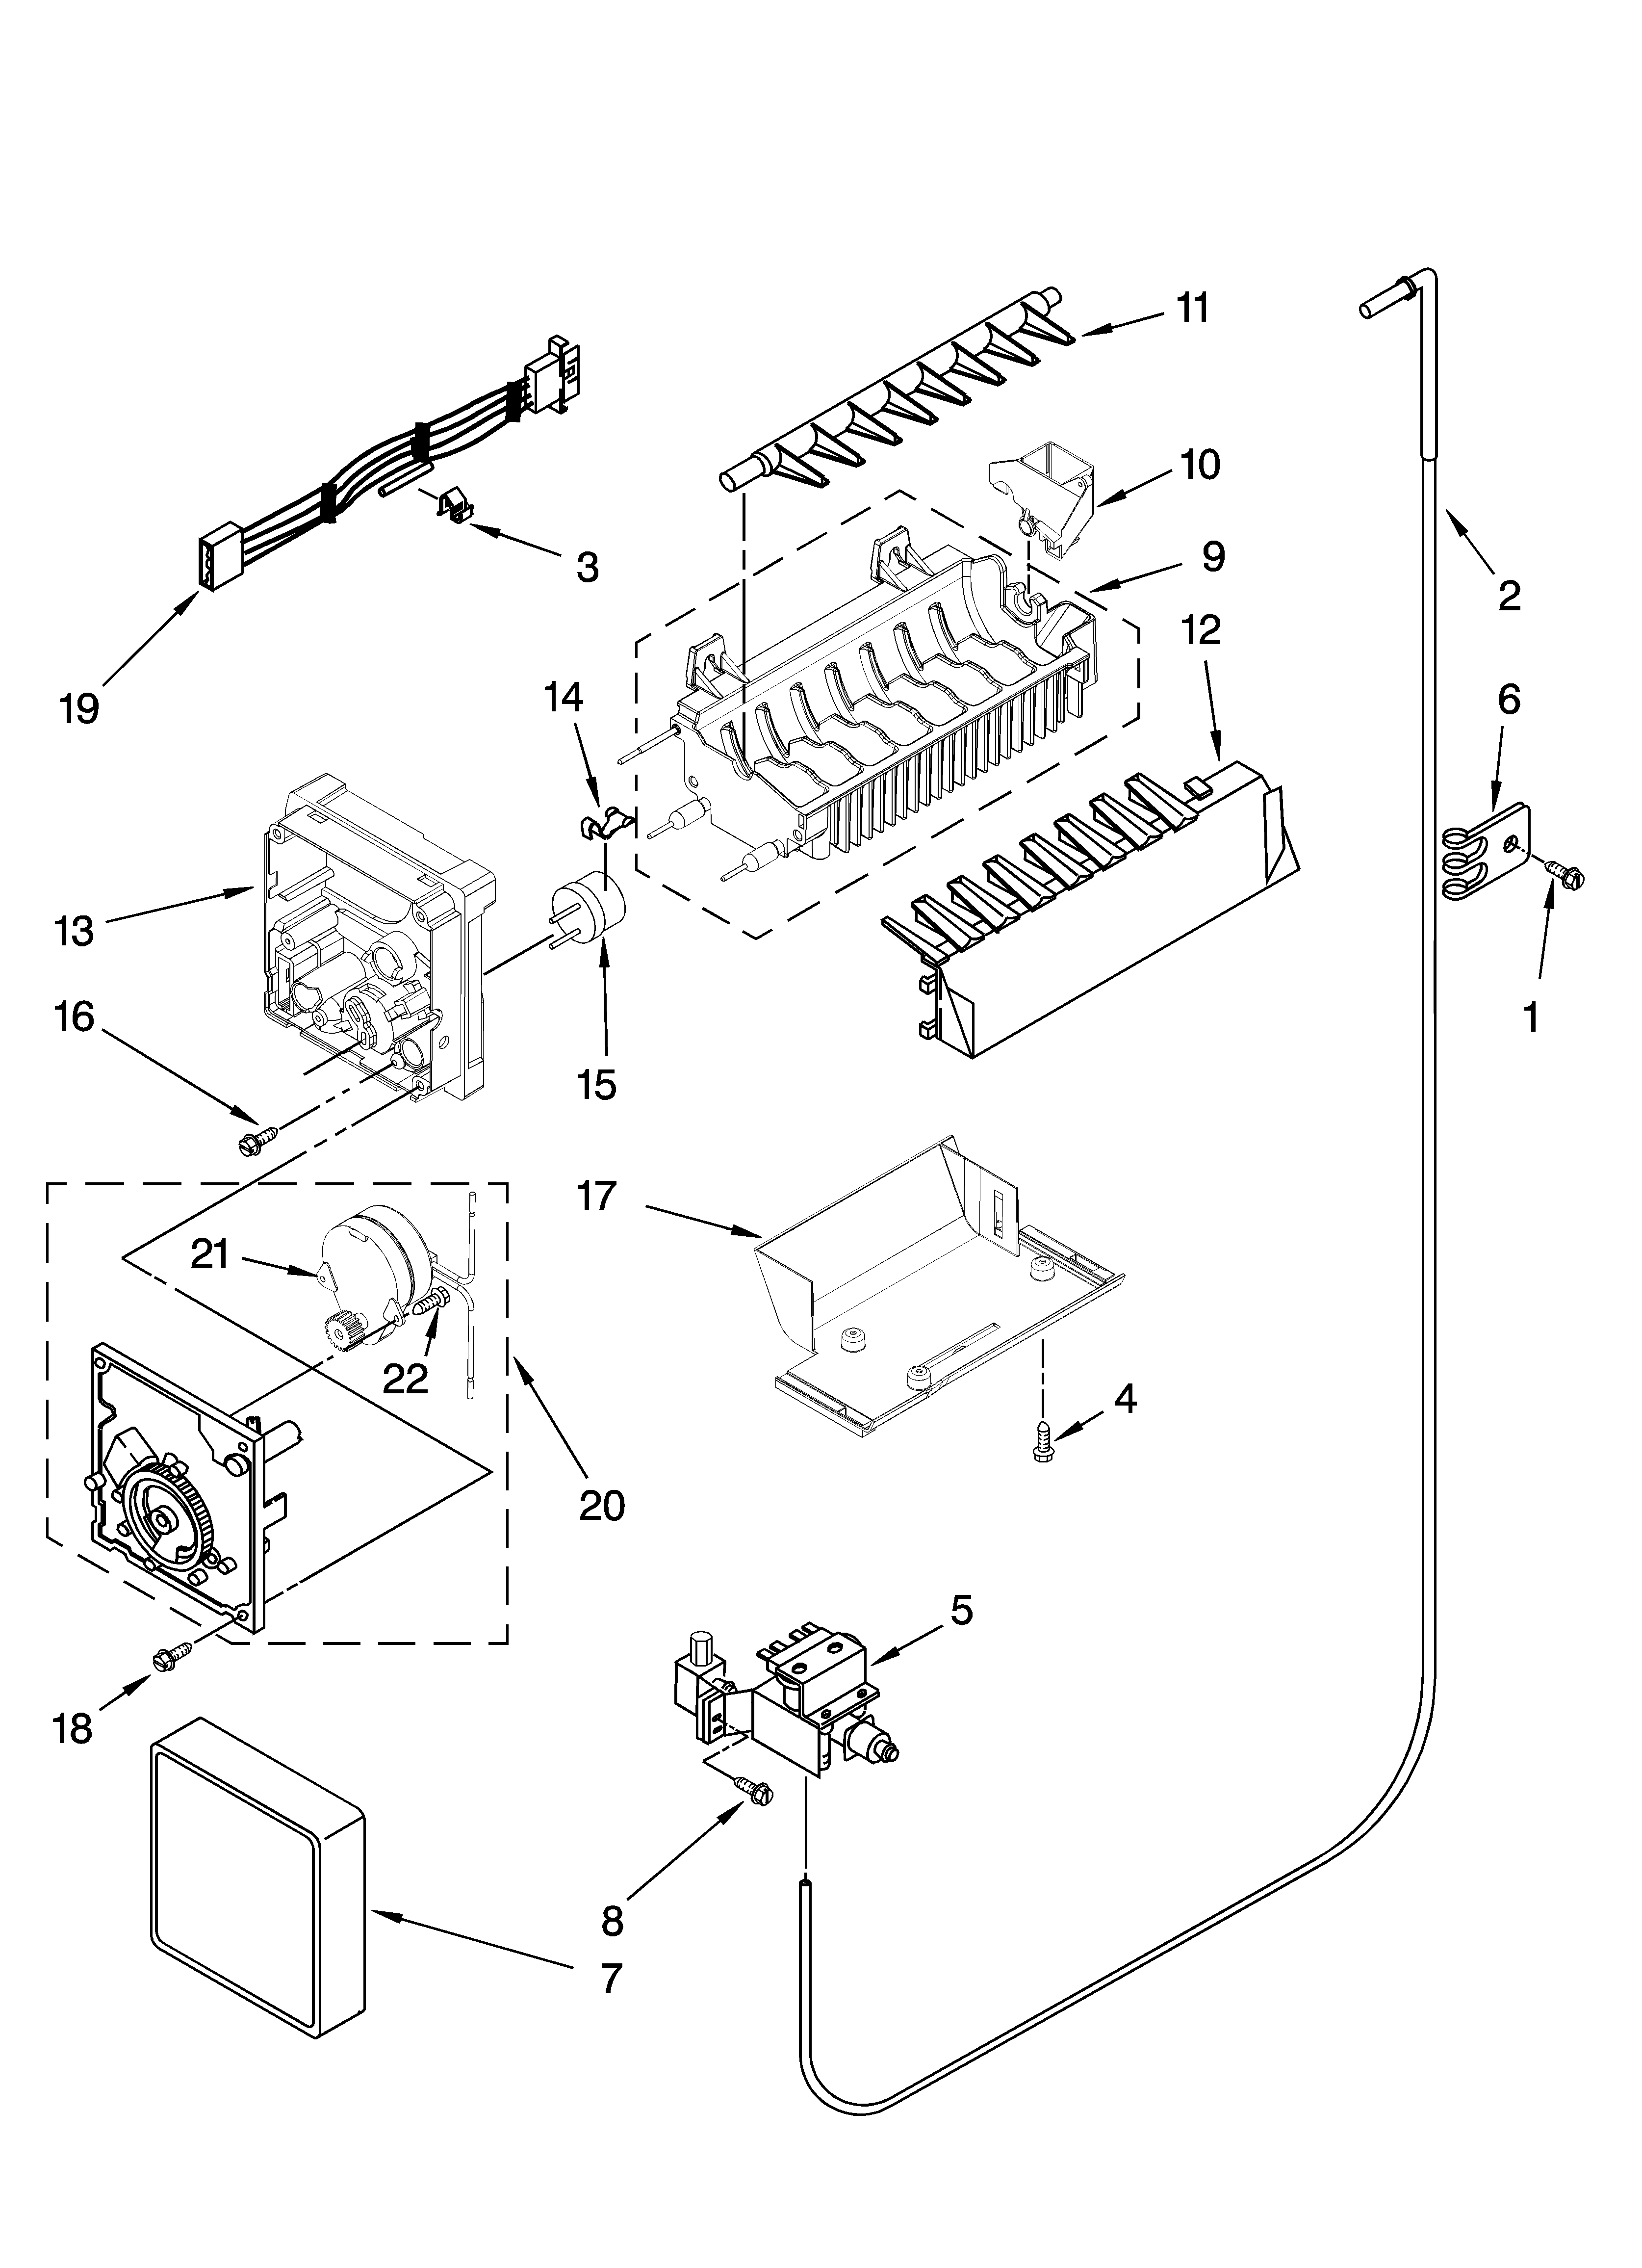 Kenmore 10657064603 icemaker parts, optional parts (not included) diagram